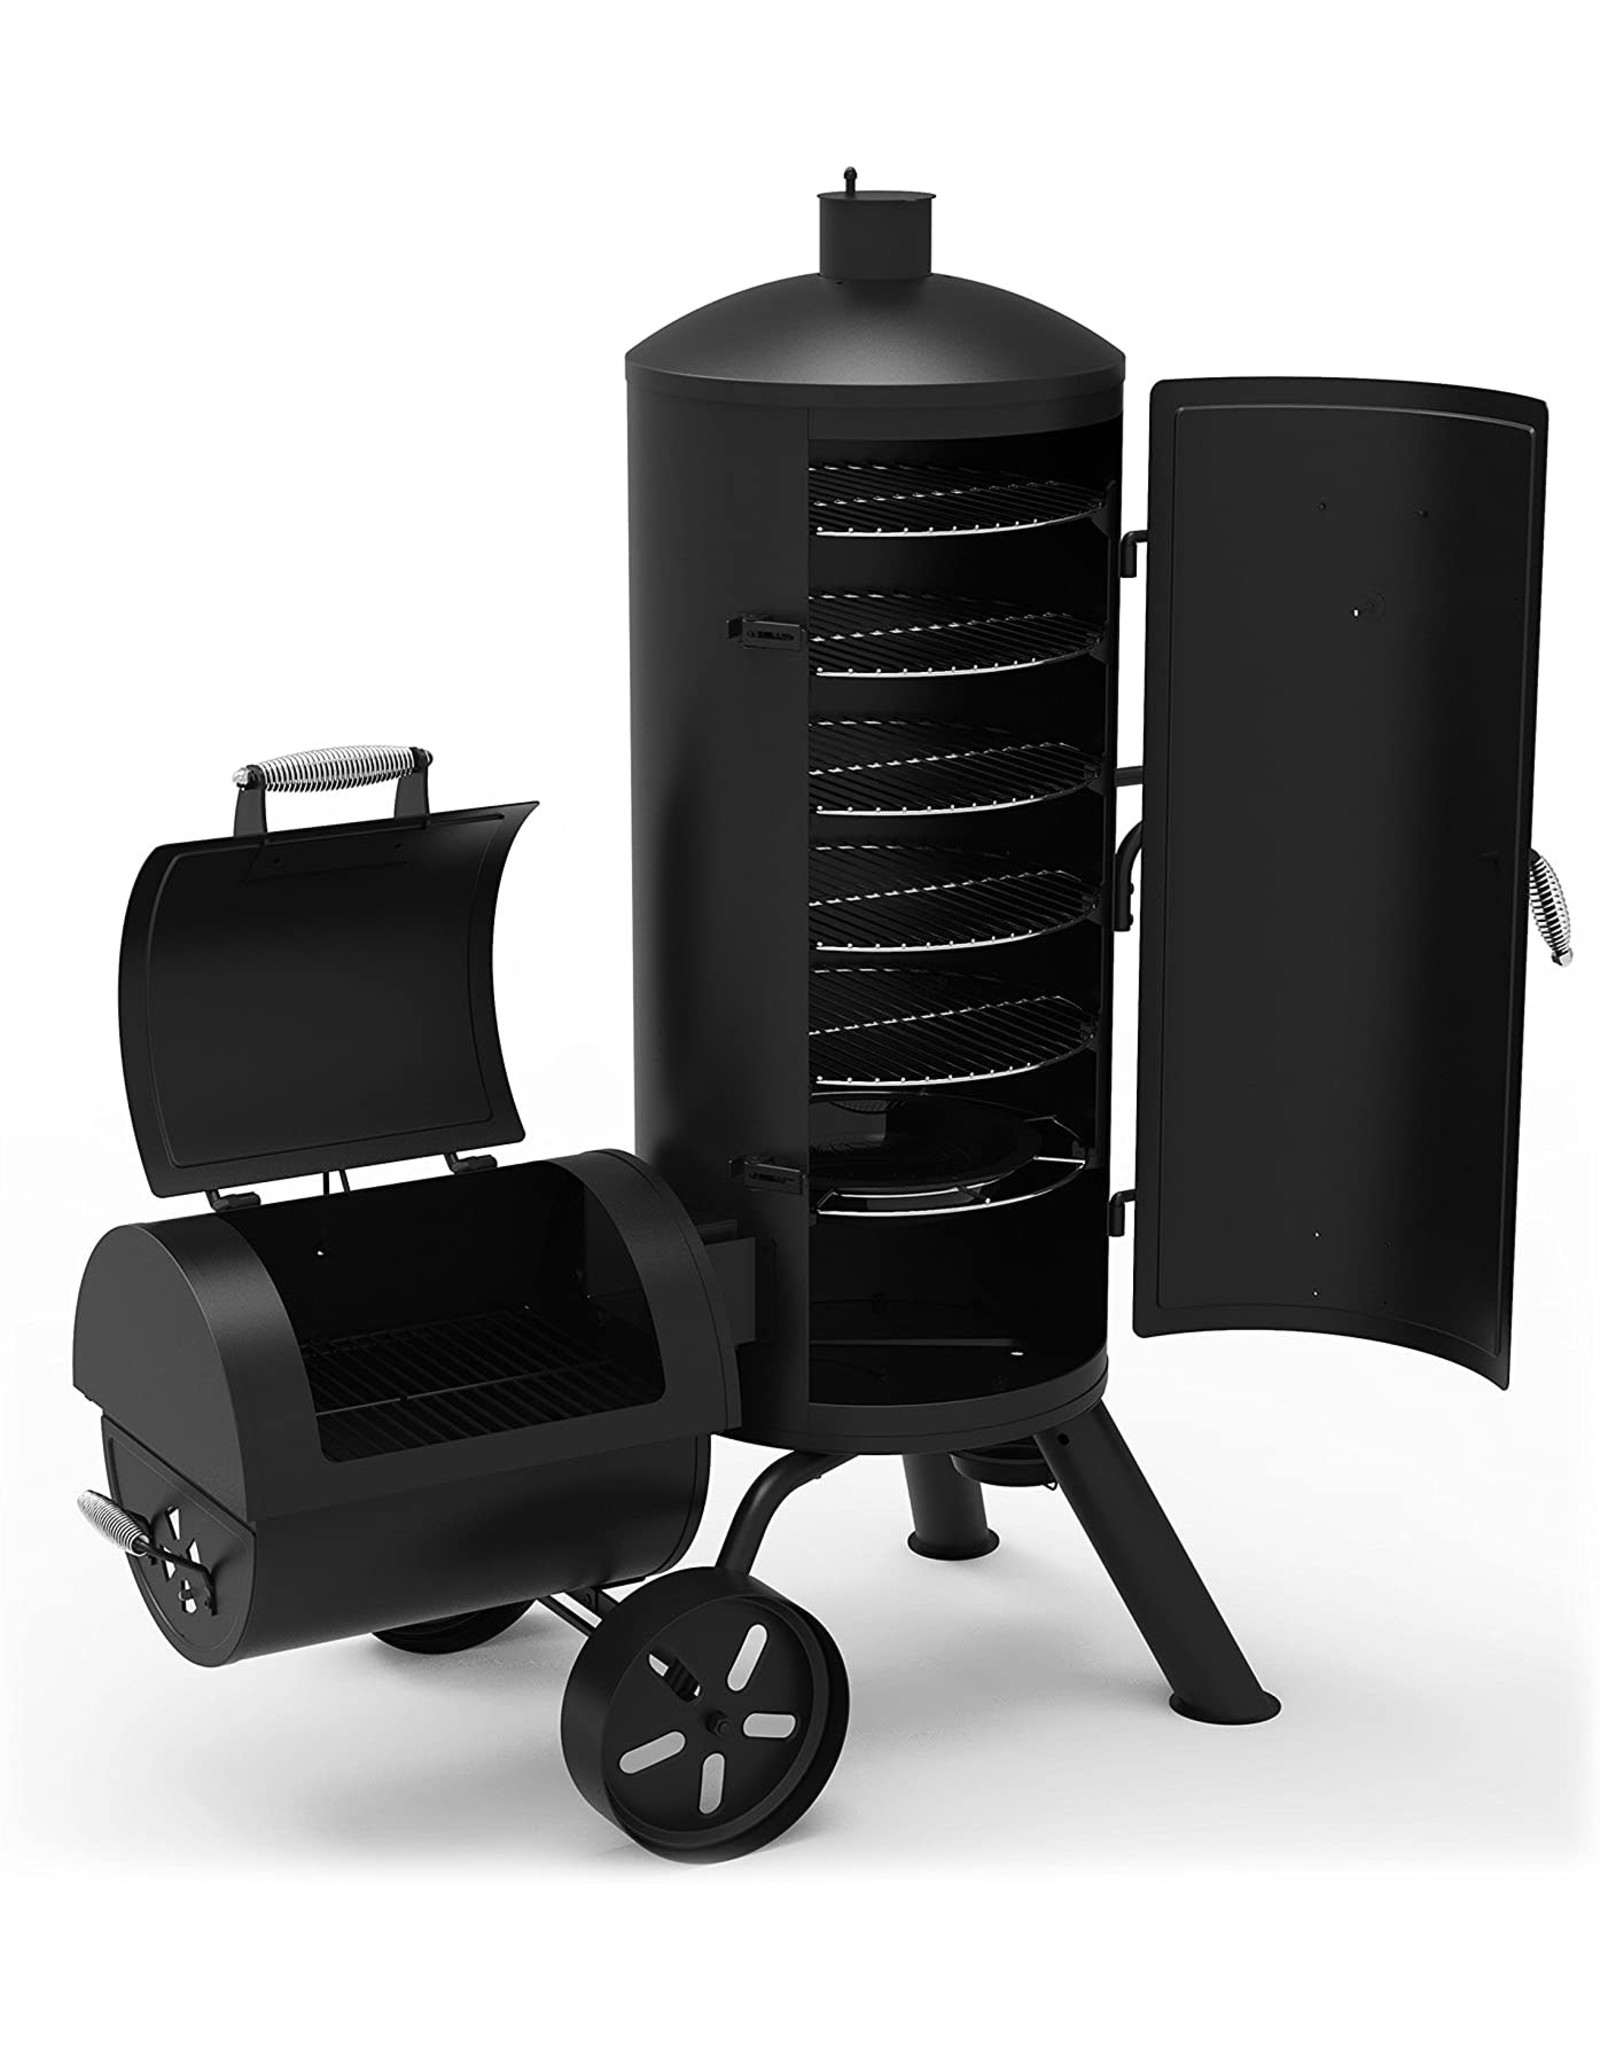 Dyna-Glo Dyna-Glo Signature Series DGSS1382VCS-D Heavy-Duty Vertical Offset Charcoal Smoker & Grill